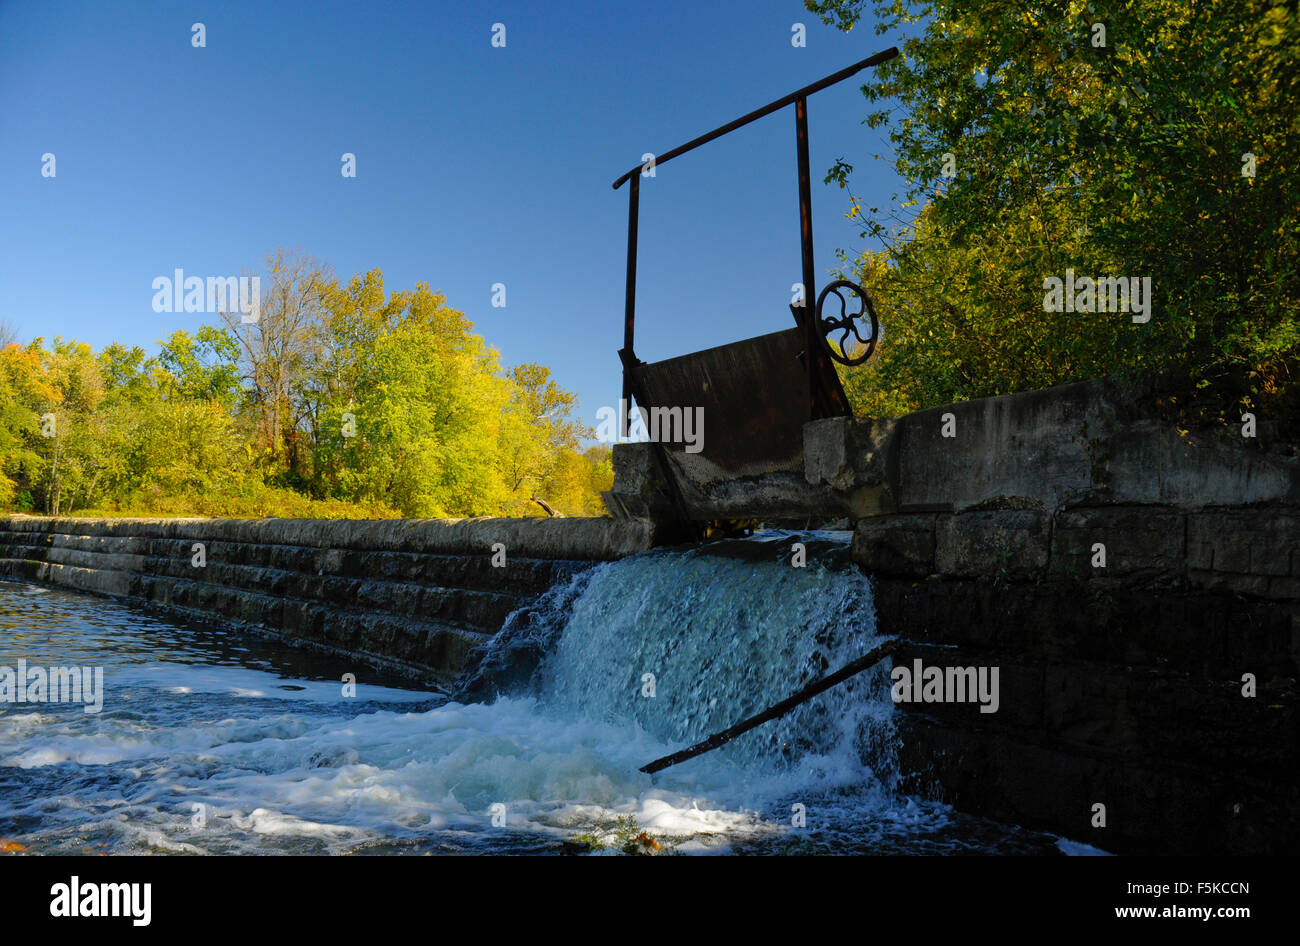 Sluice Dam Stock Photos & Sluice Dam Stock Images - Alamy